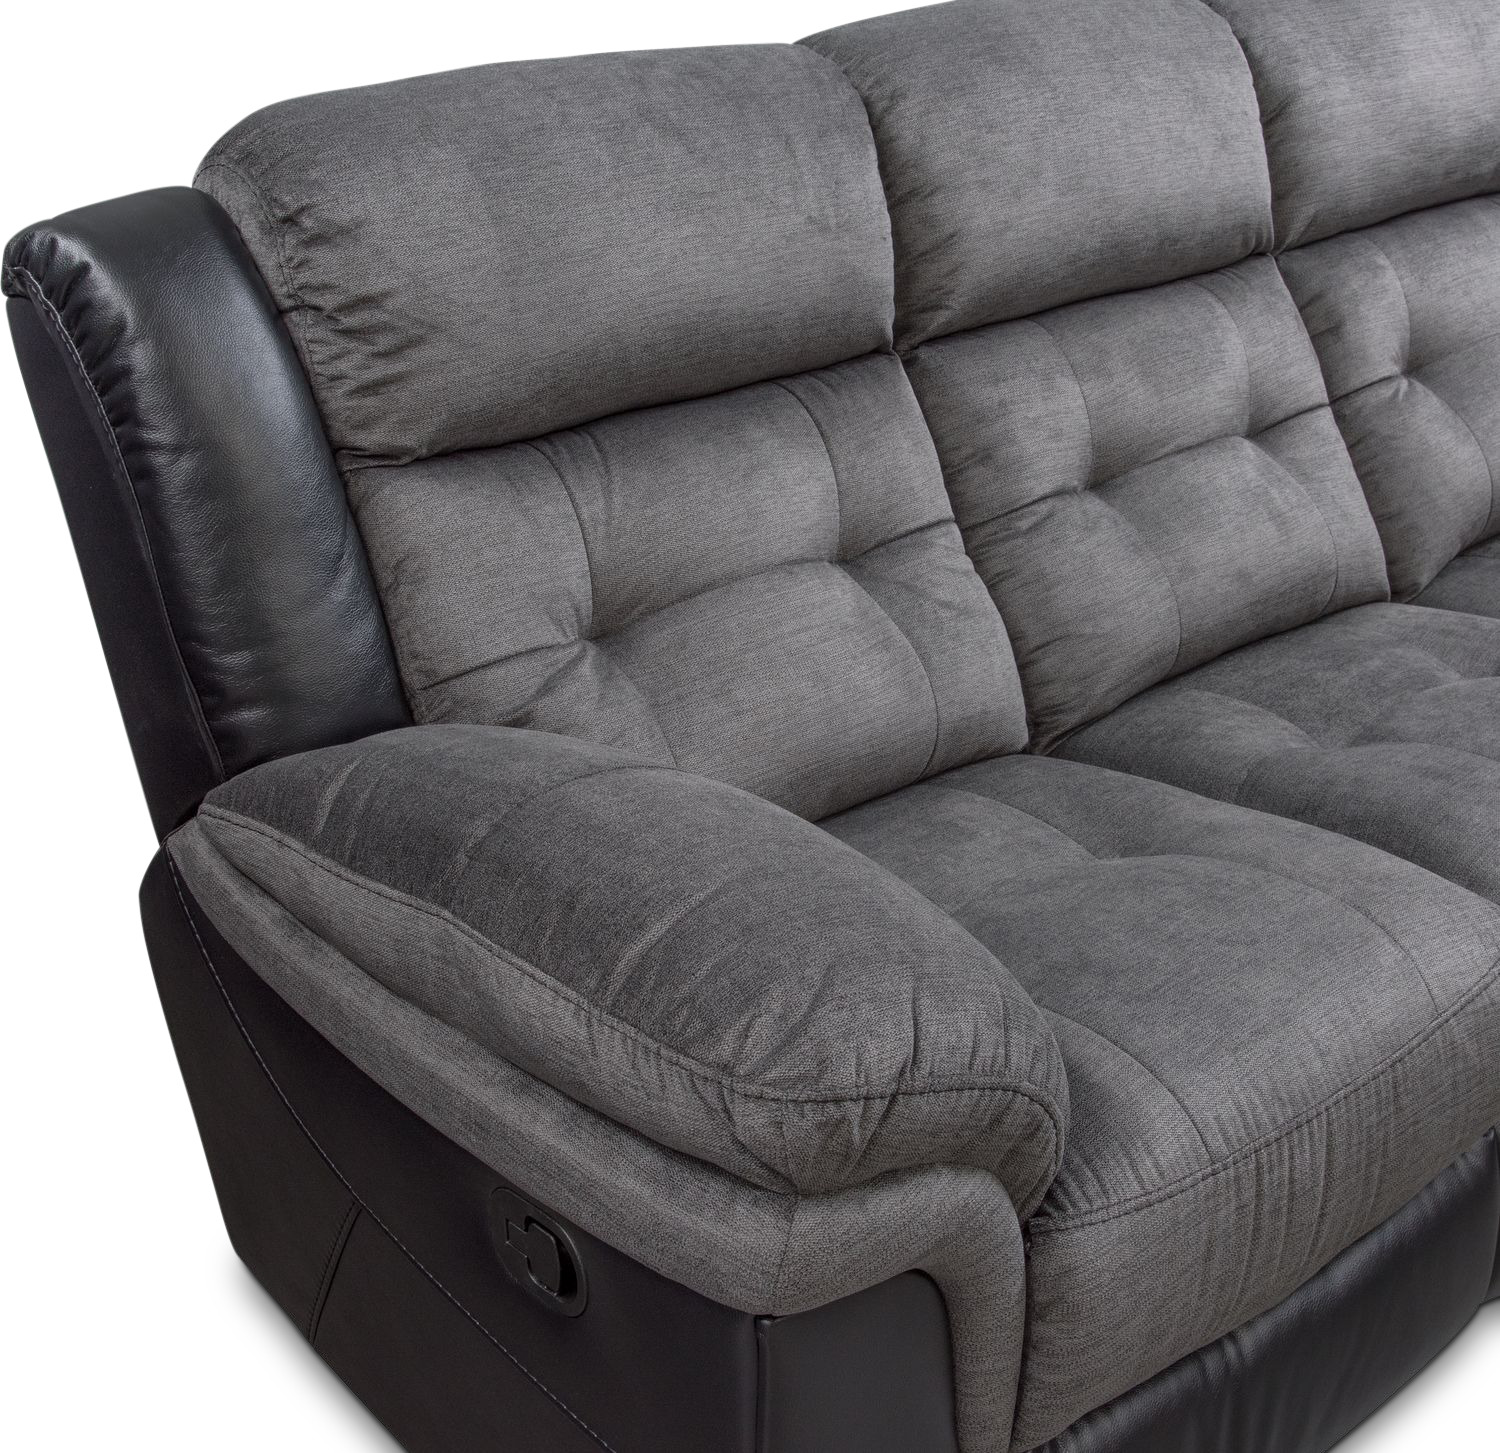 Black Reclining Sofa New Luxury Valencia 3 2 1 Seater